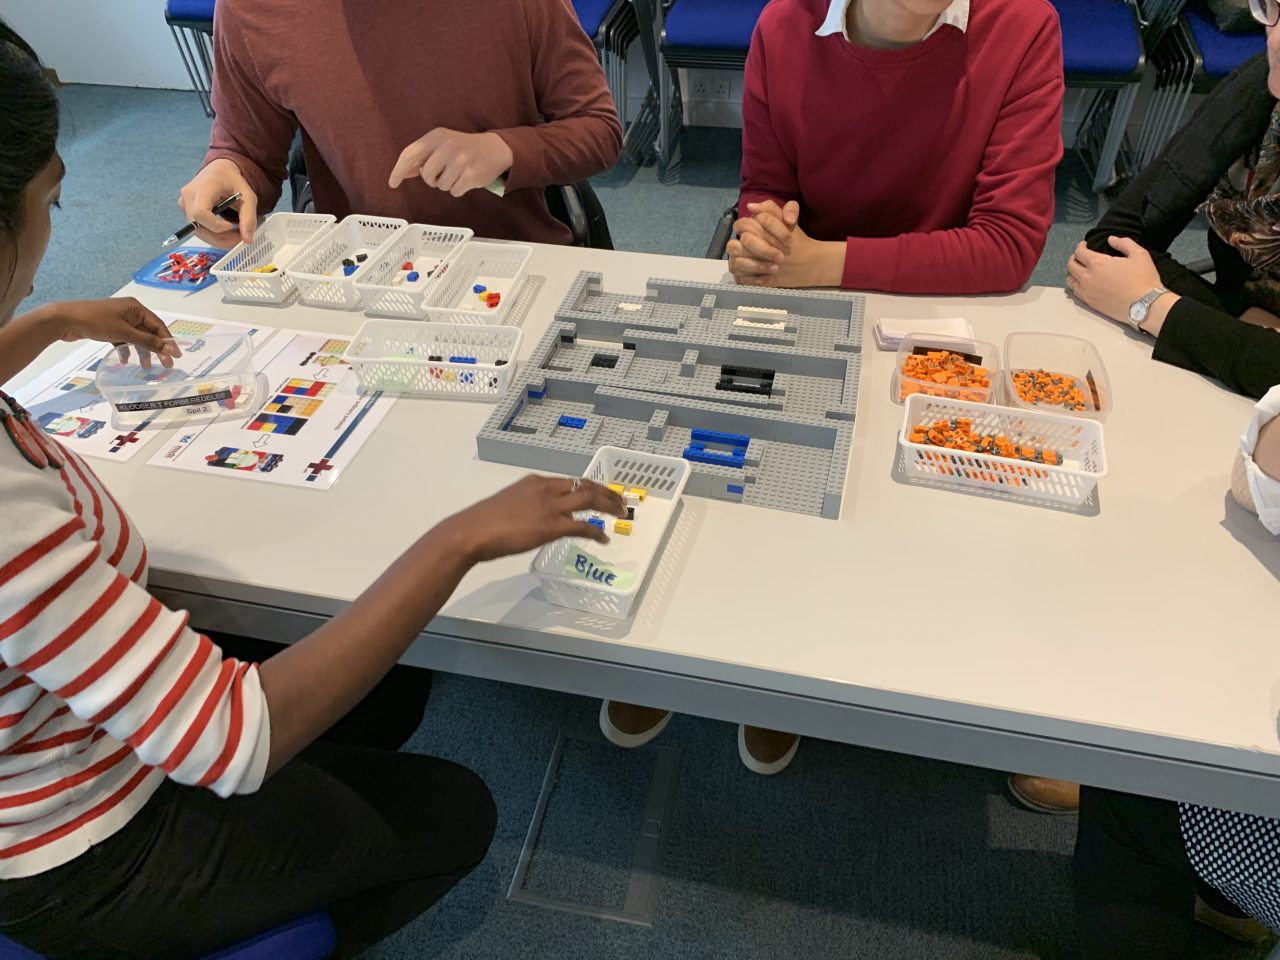 Participants using LEGO during a Management in Medicine, BRICK HOSPITAL workshop in May 2019